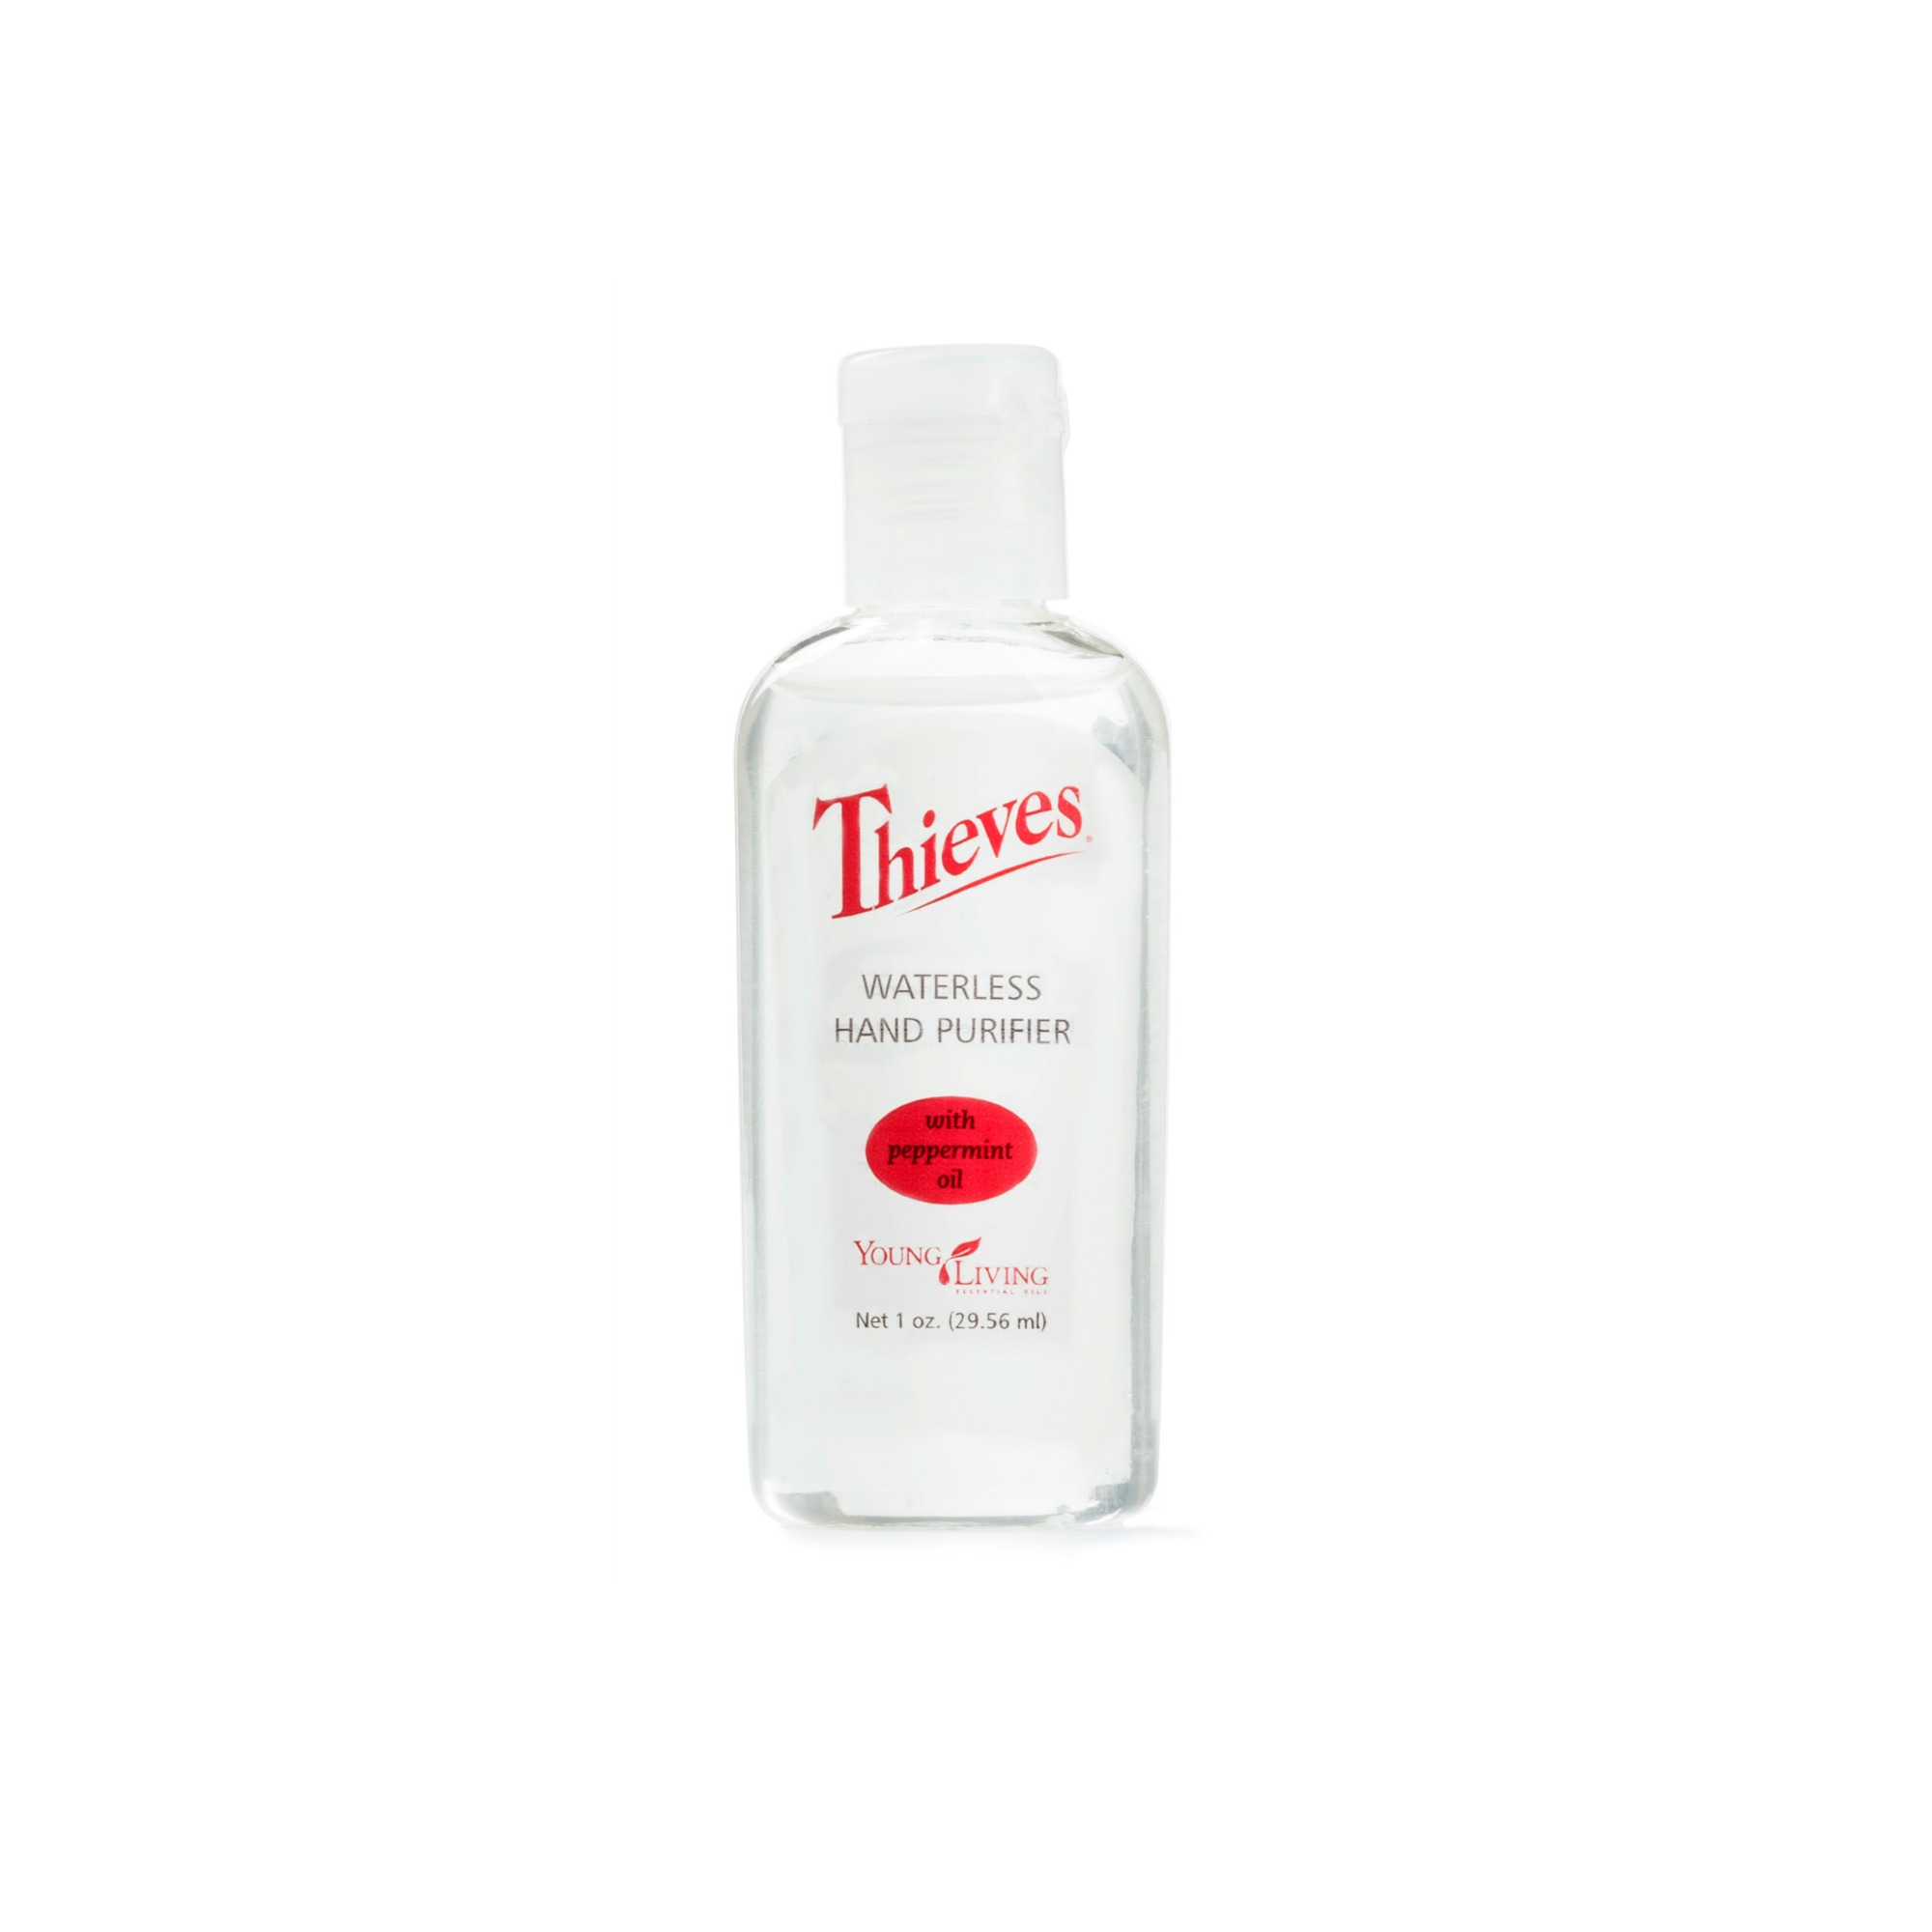 THIEVES HAND PURIFIER    This is a quick, convenient, purse-friendly fix for clean hands anywhere - from the campgrounds, to the beach, to the great outdoors, and anywhere in between. Infused with Thieves and Peppermint essential oils, along with aloe, this hand purifier cleanses, purifies, and soothes skin, leaving a pleasant, spicy-sweet scent. Also comes in a larger size.   Click here   to learn more about this product.